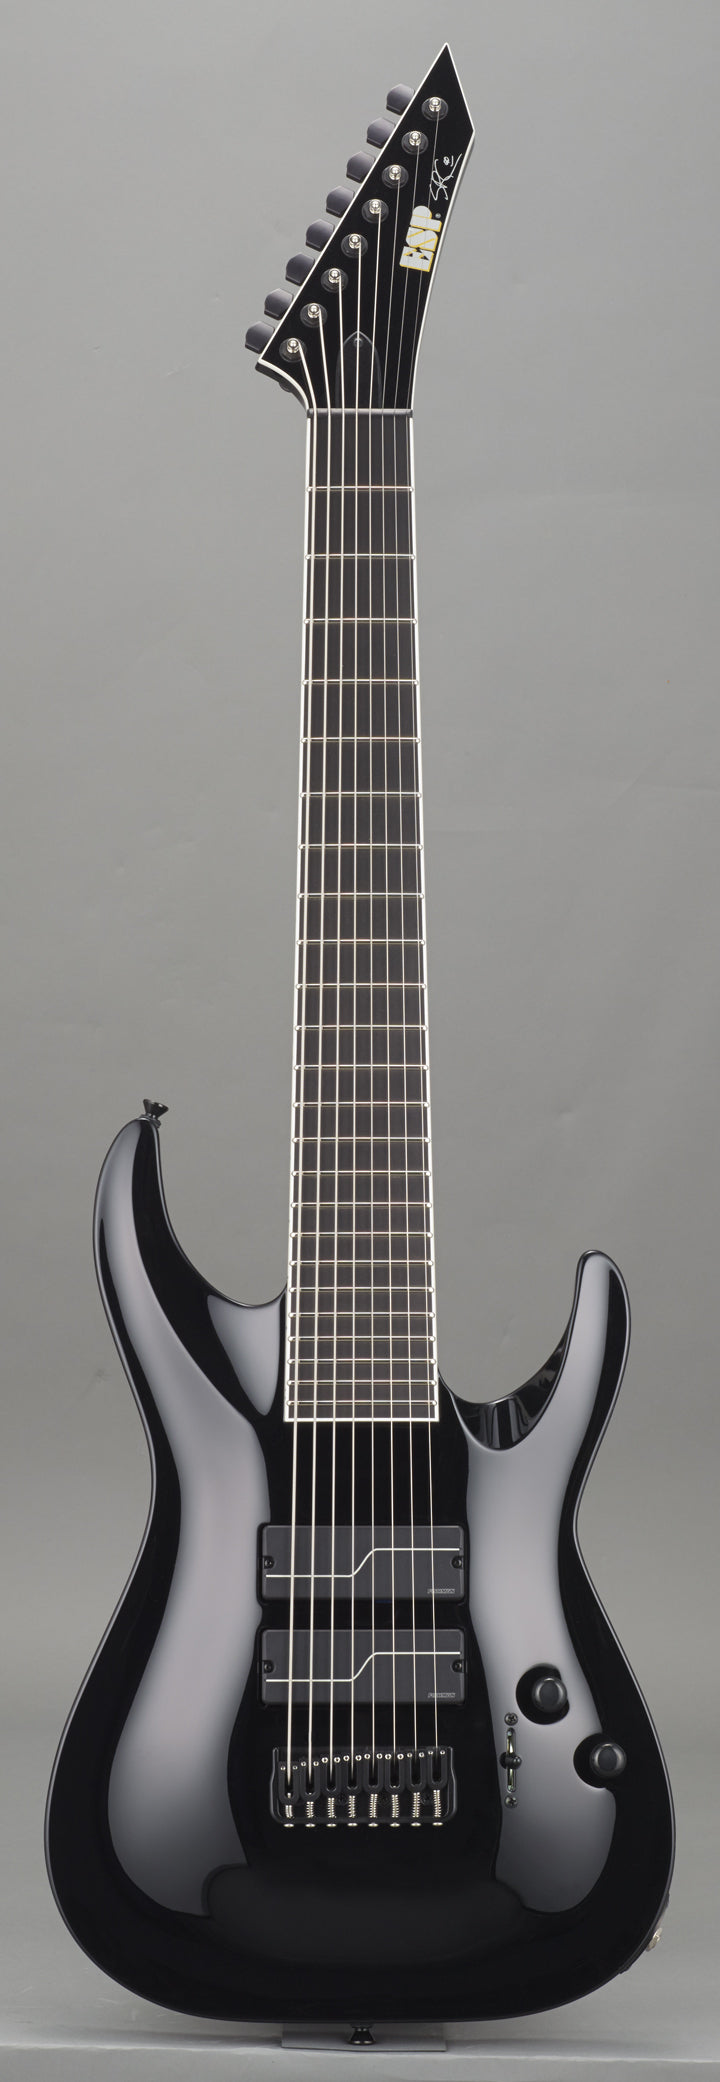 ESP STEF-B8 Stephen Carpenter Signature 8-String Baritone Black